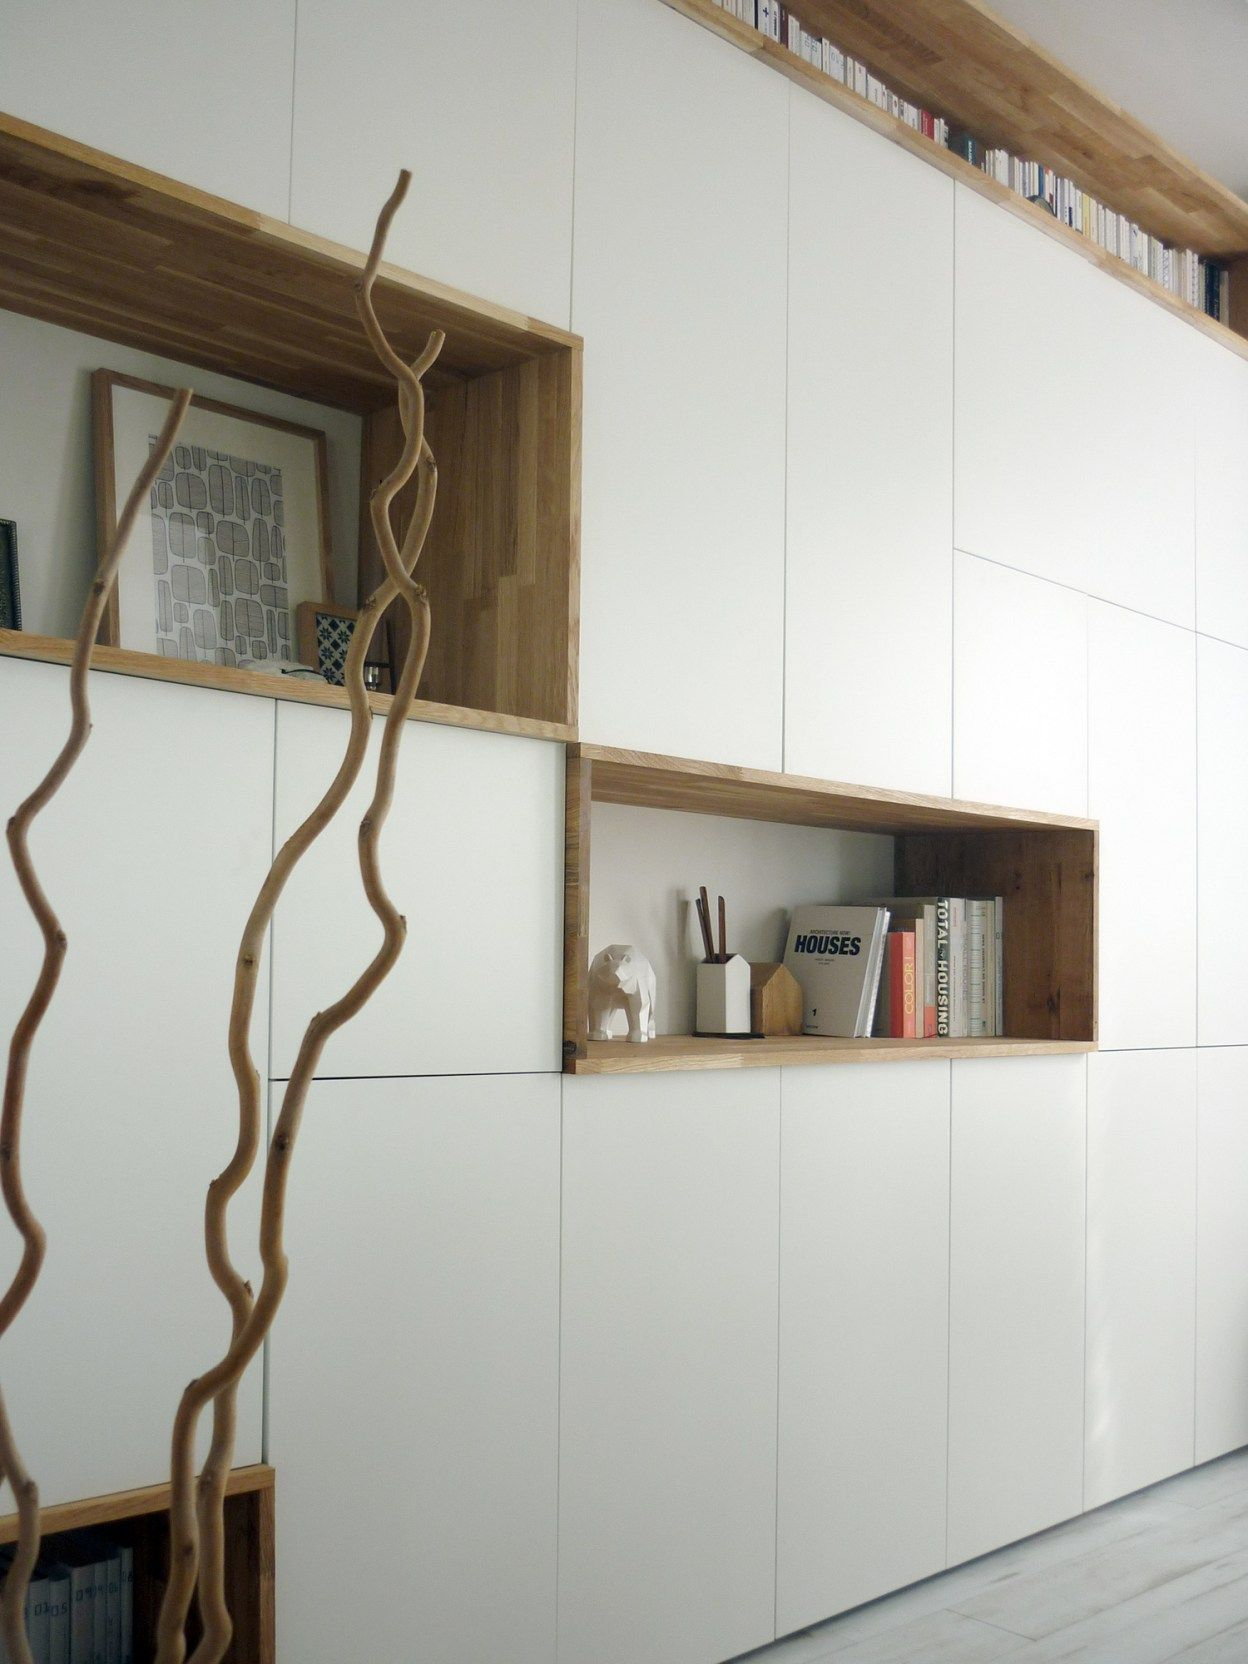 mur rangements blanc bois scandinave | My future home | Pinterest ...